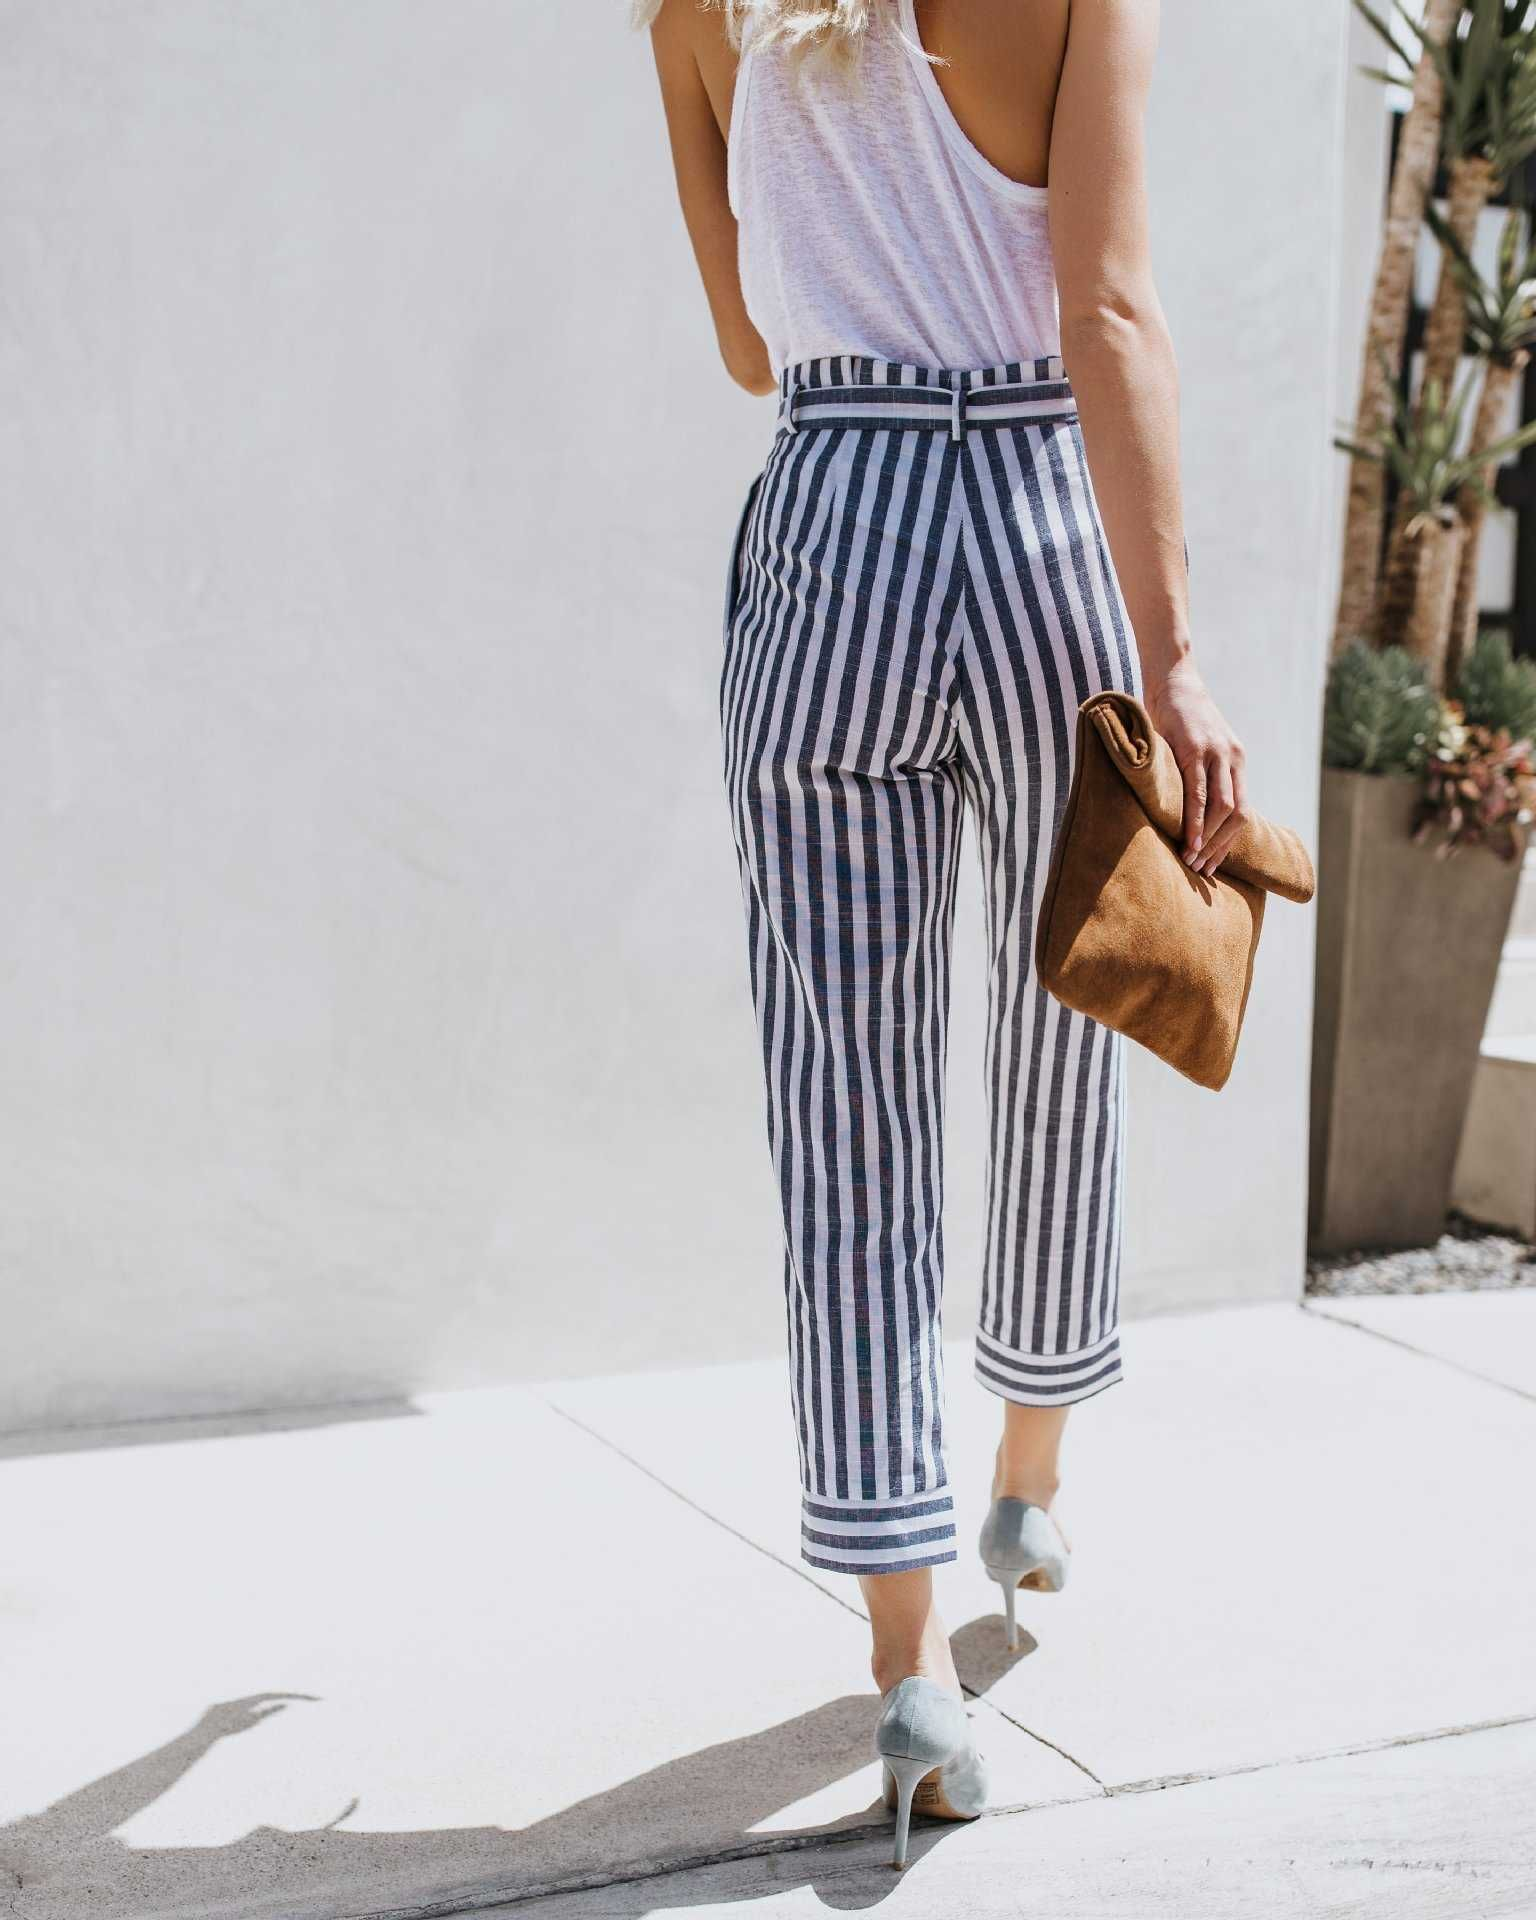 8a5592715ce2ed stay chic with free shipping striped pants for only $20 after.extra 10% OFF  black high waisted tie trousers black and white striped ankle pants tall ...